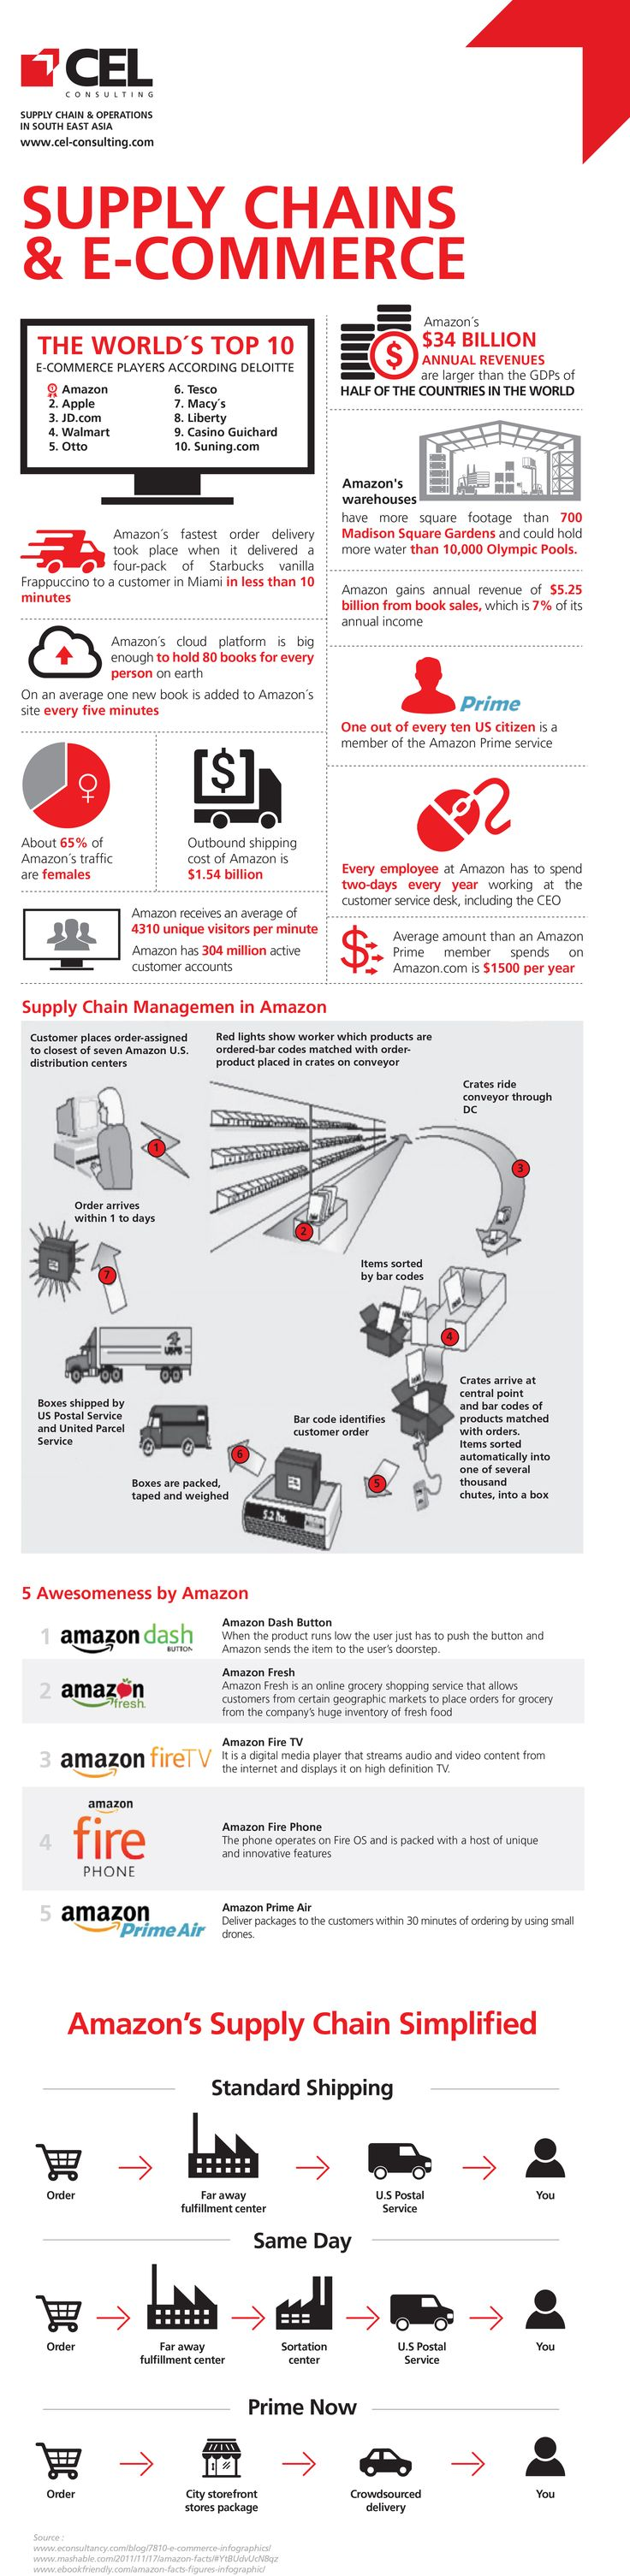 SUPPLY CHAINS & E-COMMERCE Supply chain management is at the heart of any retail business. E-commerce supply chain is no different. Let's explore some more interesting facts about Supply chains & e-commerce. #supplychains #ecommerce #inforgraphic